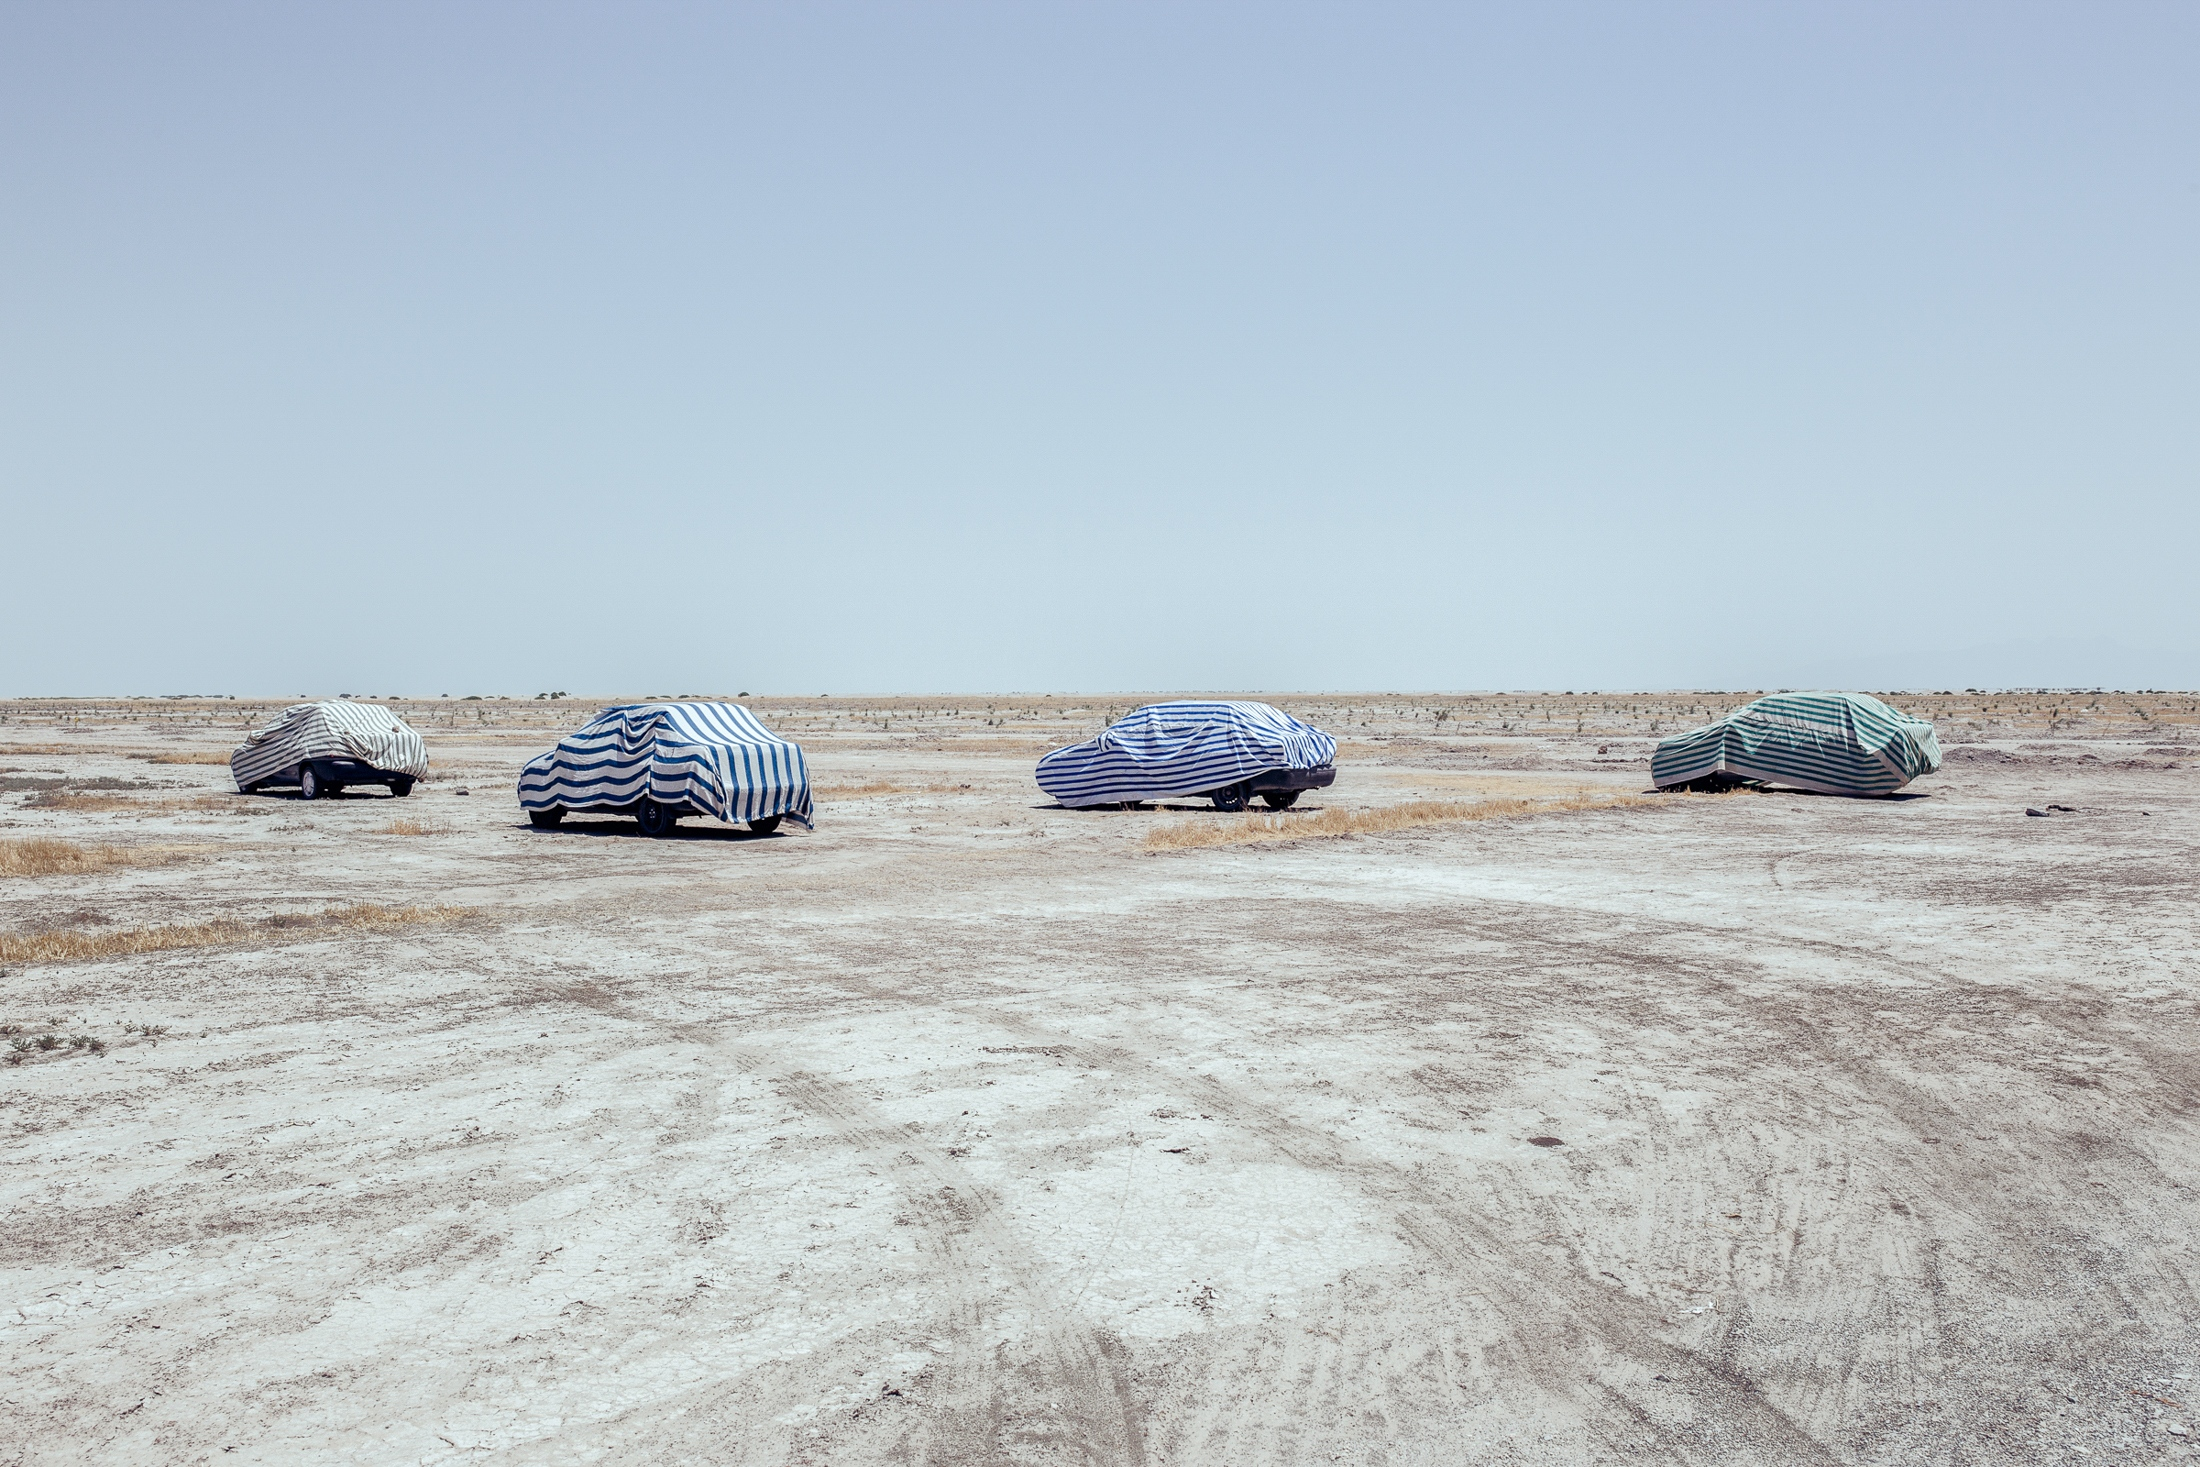 In an effort to prevent salt storms, the Urmia Lake restoration department plants trees in part of the lakebed that has completely dried up. White-collar staff visiting the site now park their cars where once the lake was full of water. Lake Urmia|East Azerbaijan|Iran.2015